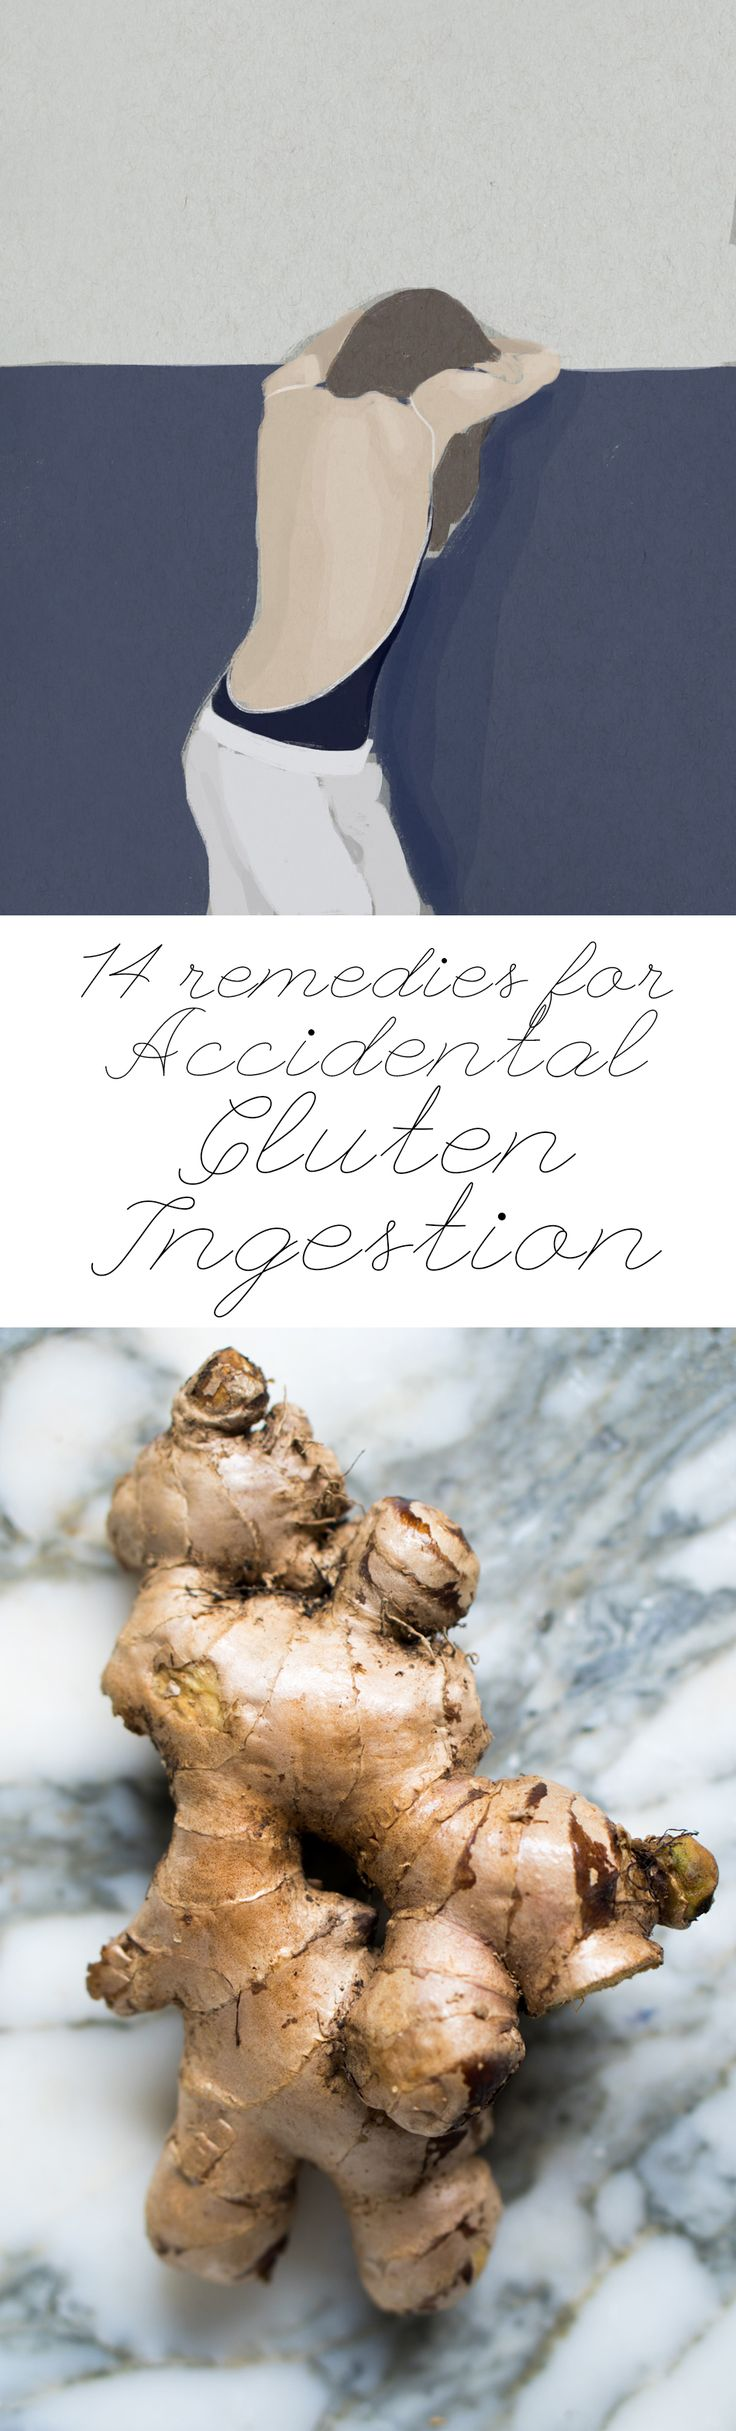 14 Home Remedies To Try After Accidental Gluten Ingestion